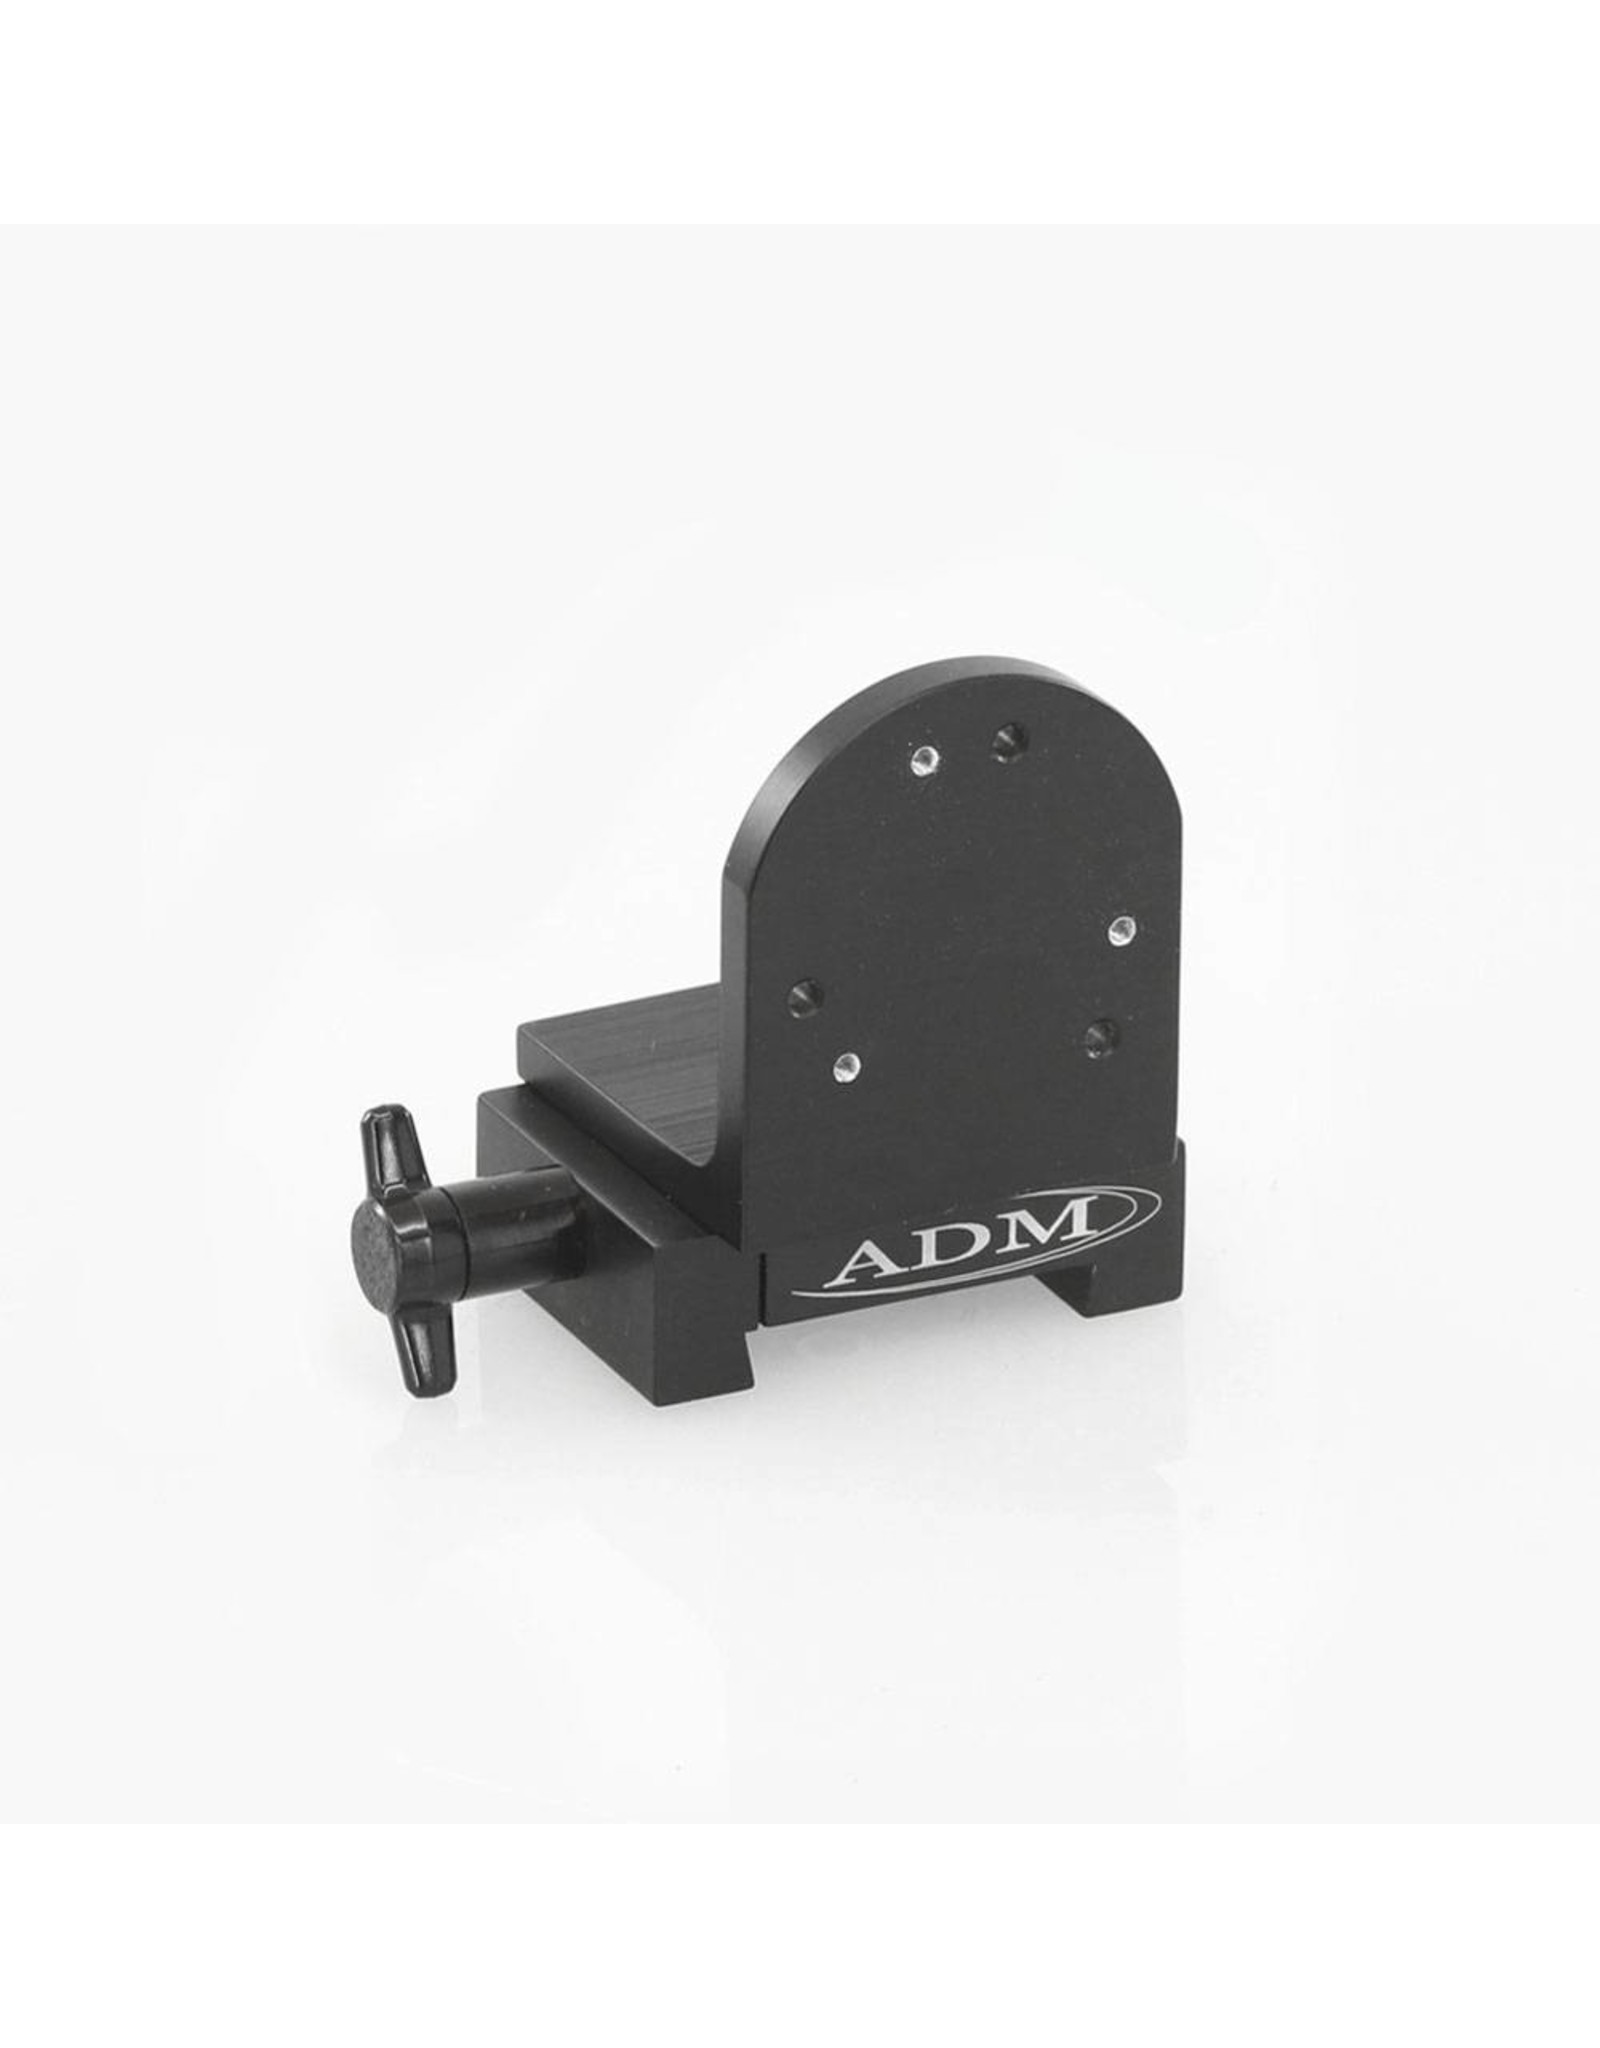 ADM ADM V Series Dovetail Plate Adapter with Polemaster